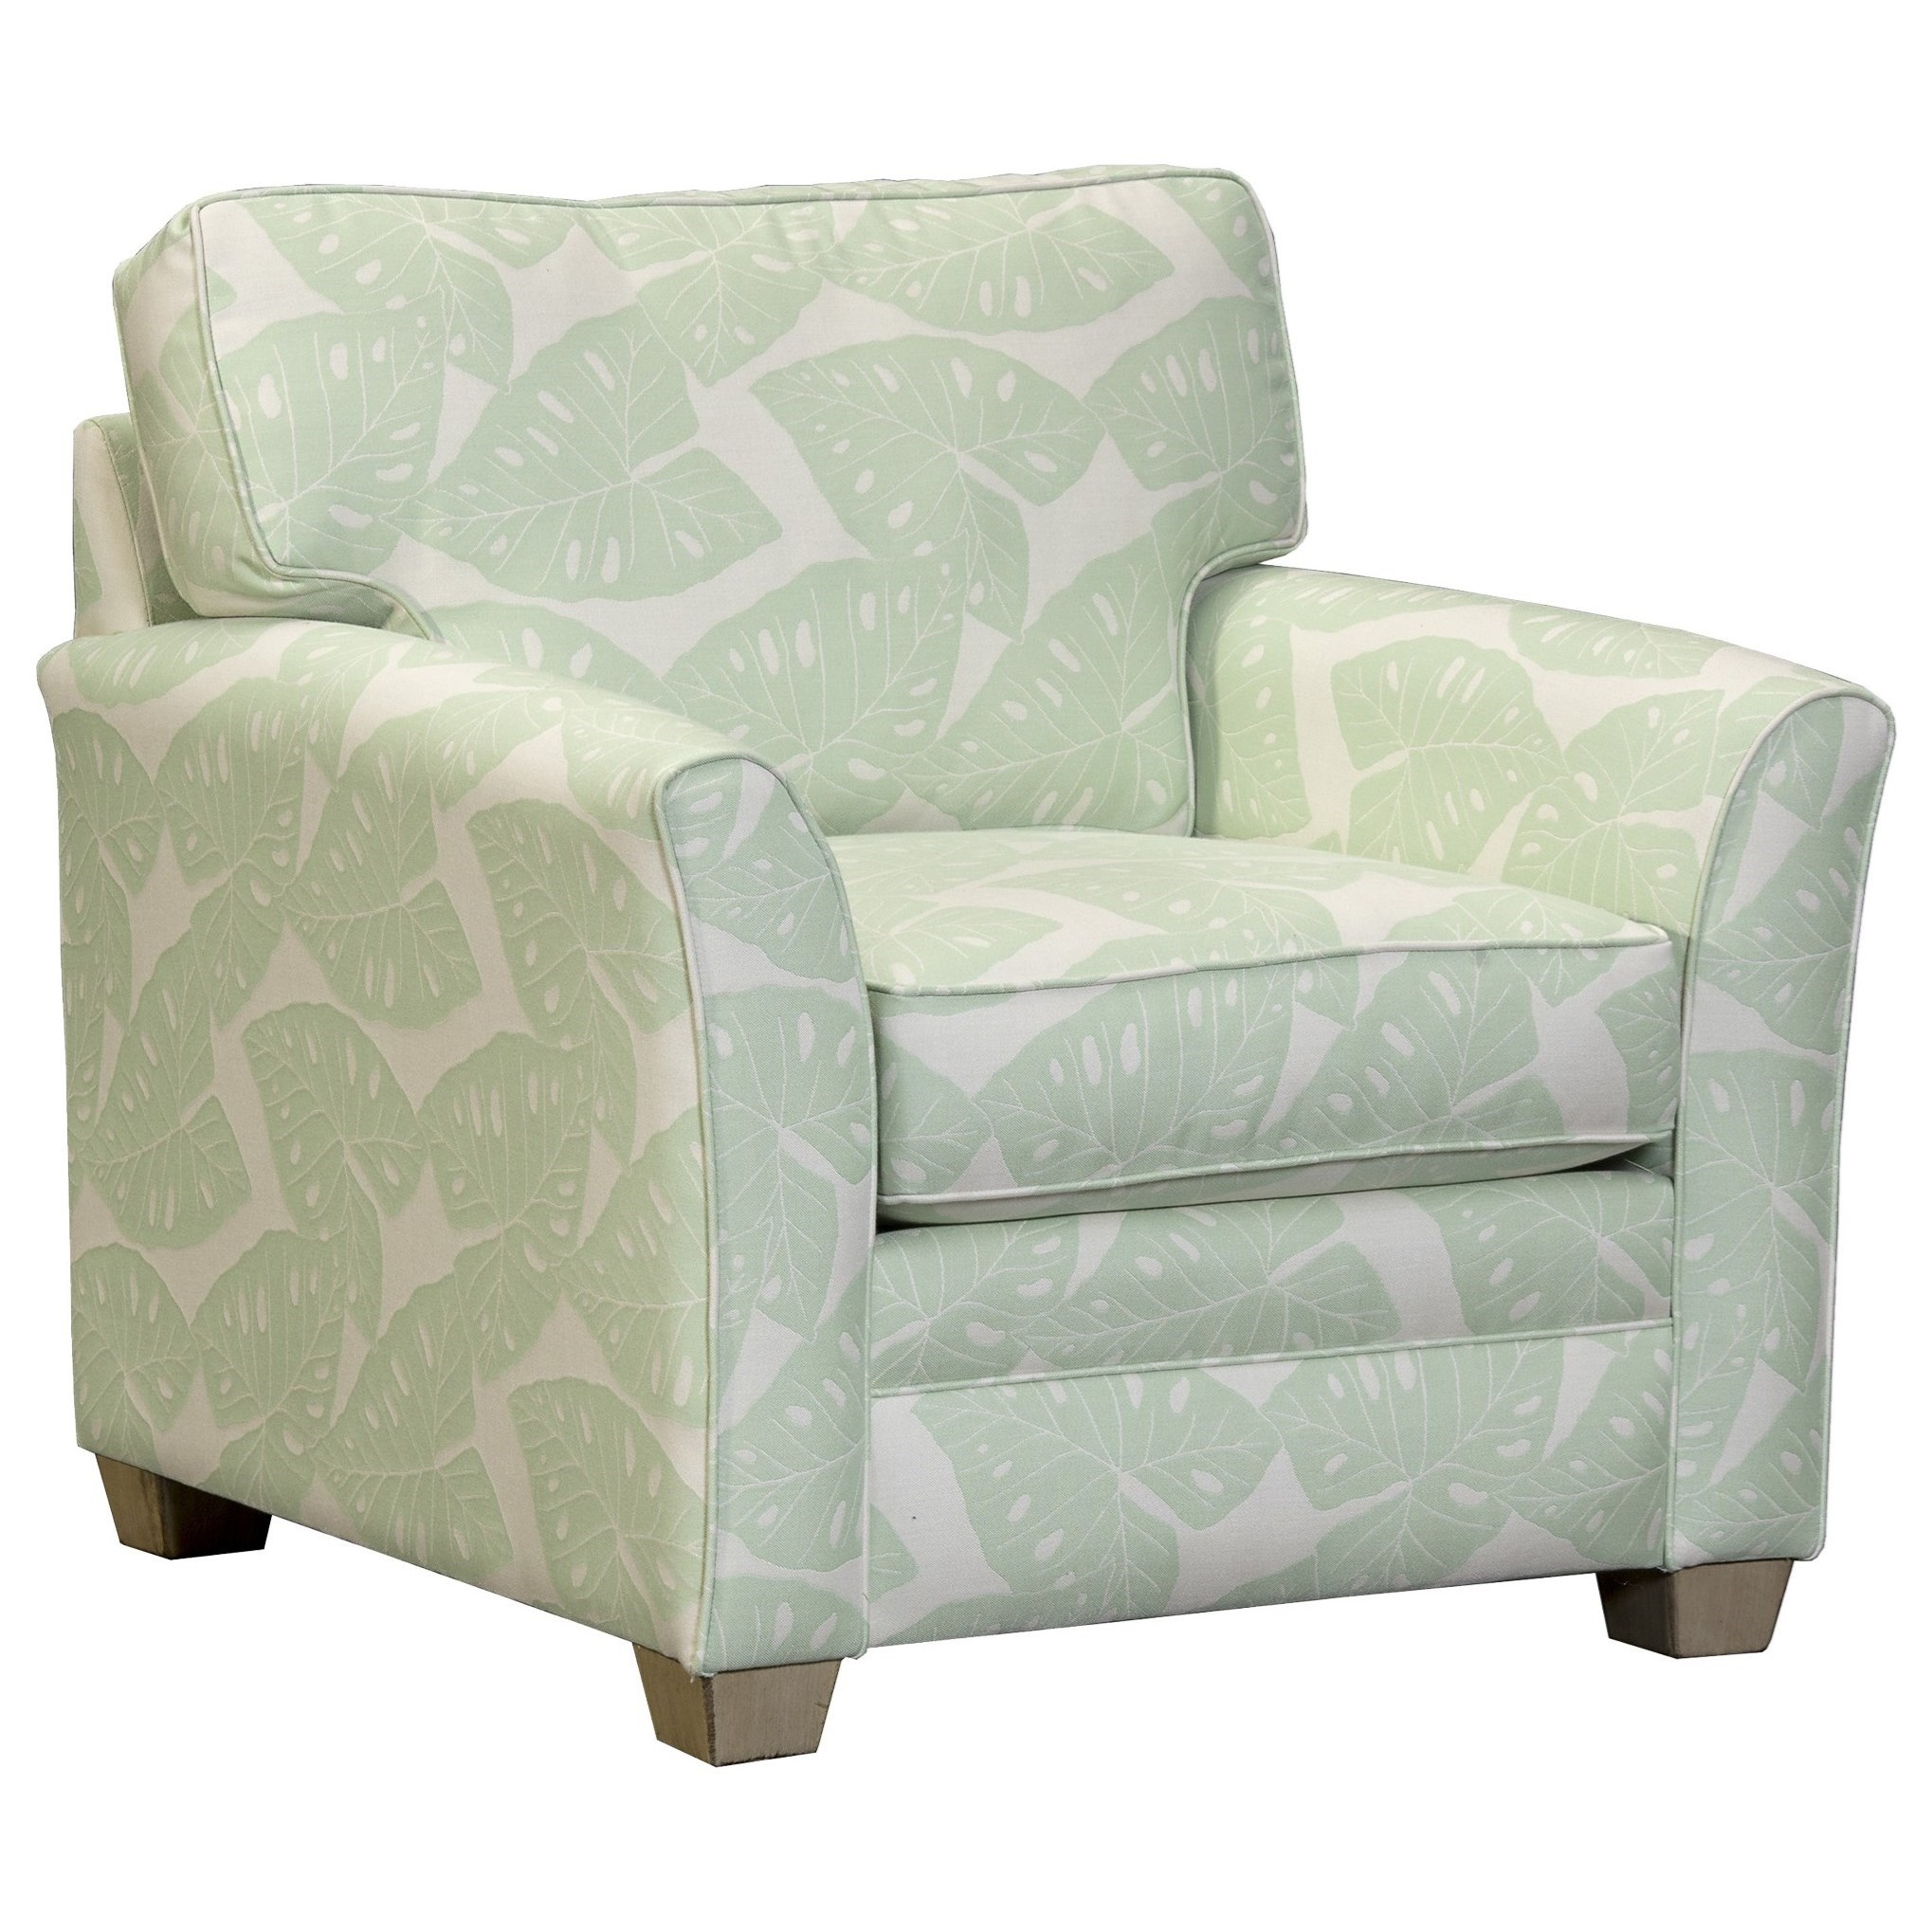 202 Chair by Capris Furniture at Esprit Decor Home Furnishings